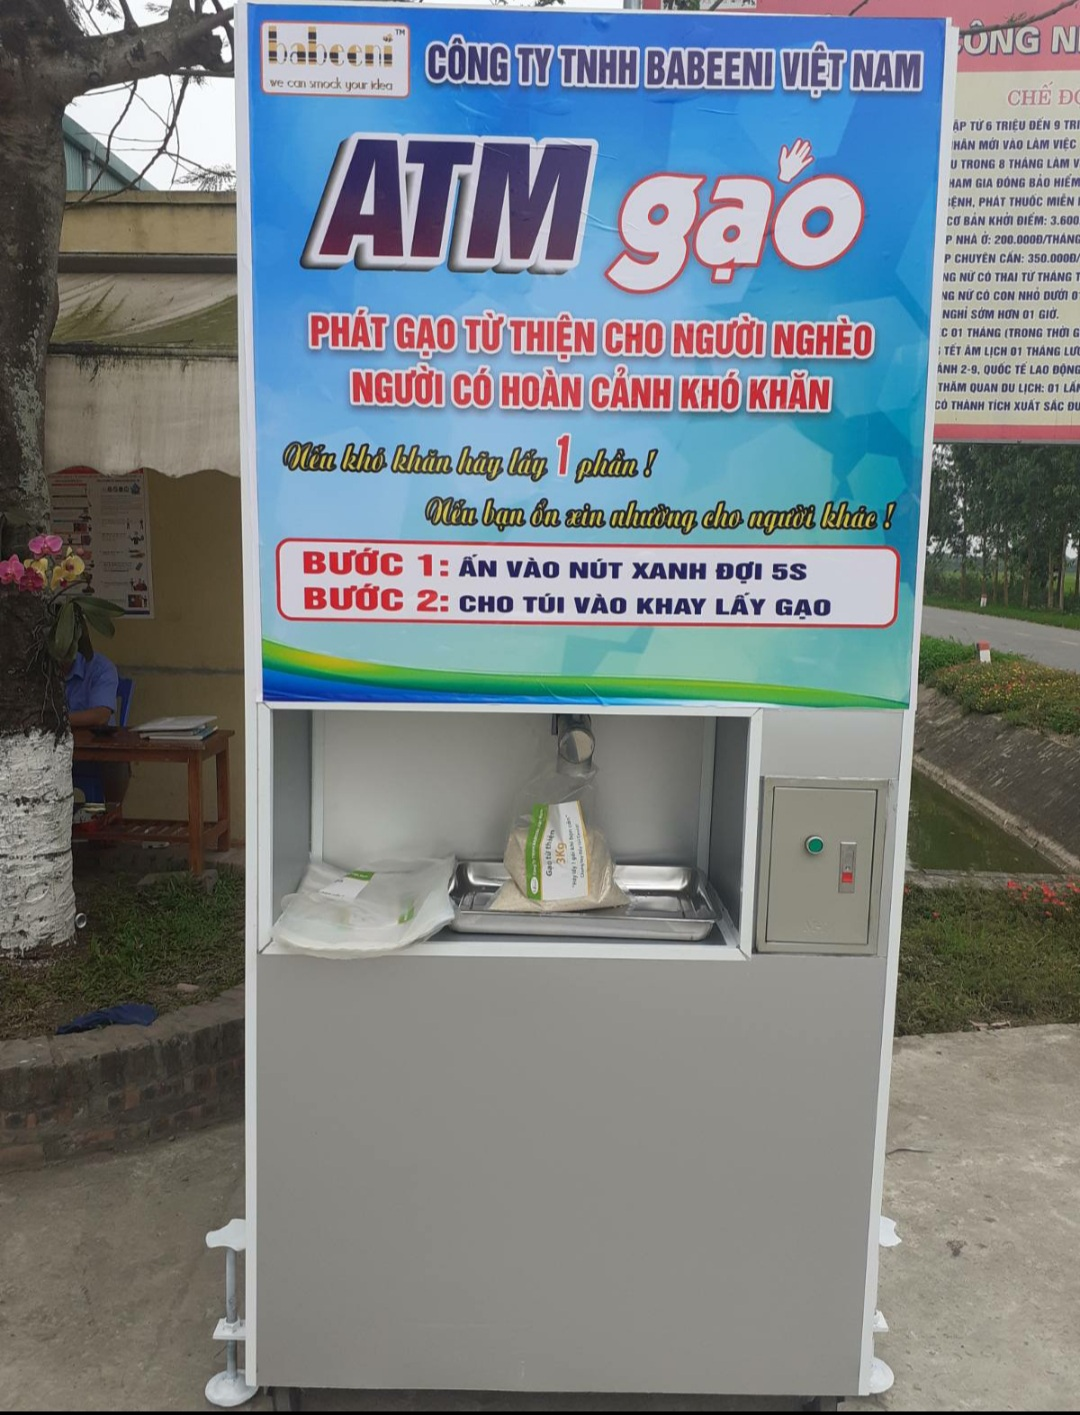 Babeeni Set Up Rice ATM to Dispense Free To The Affected by Covid-19